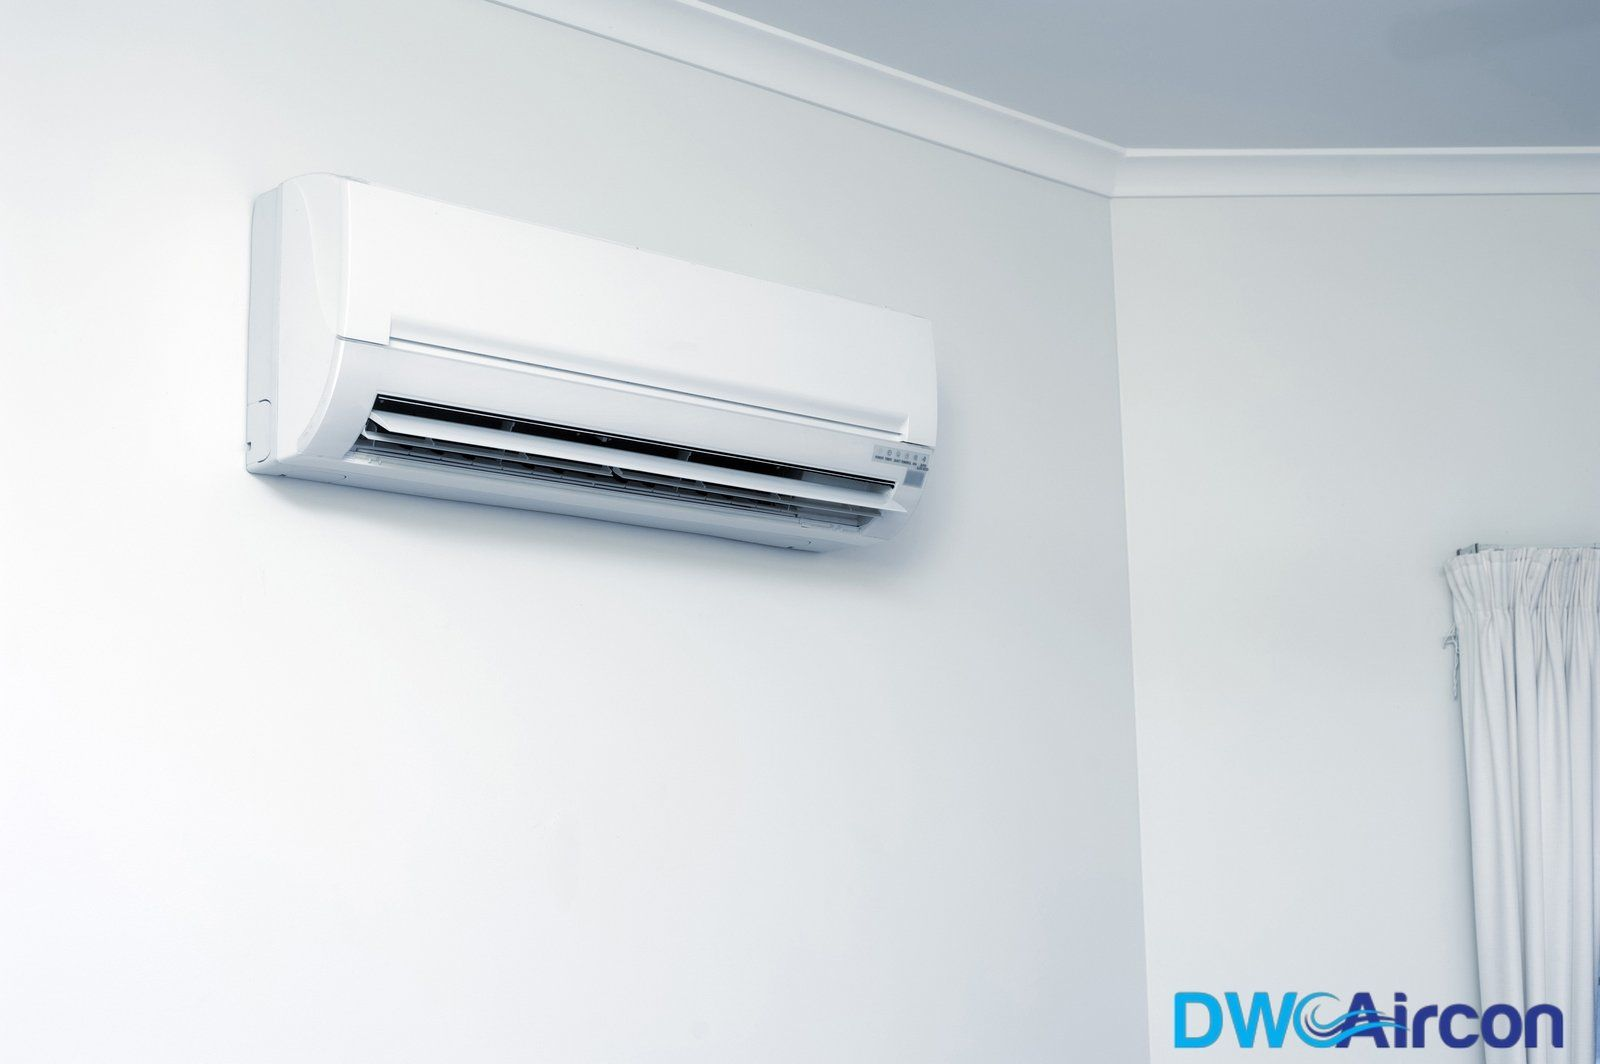 Aircon Leaking Dw Aircon Servicing Singapore Offers Complete